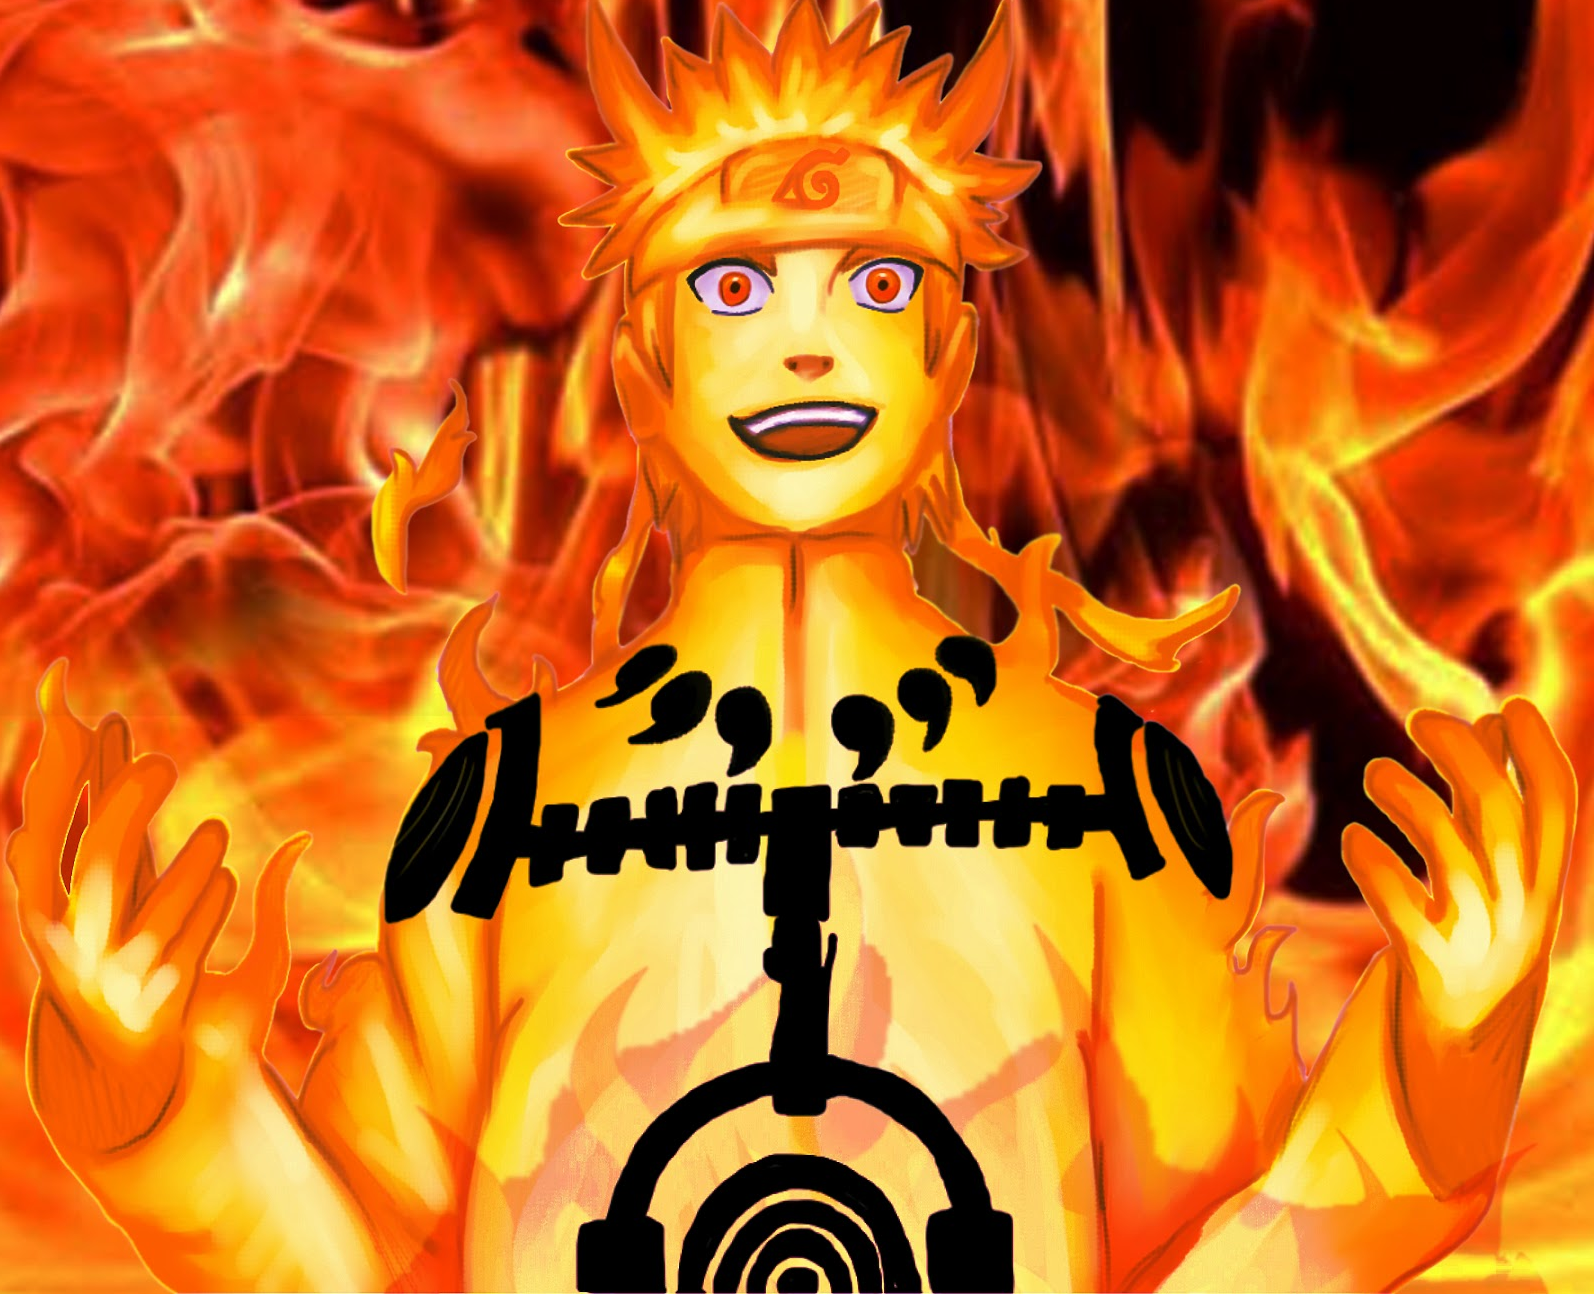 FileNaruto Uzumaki - N...